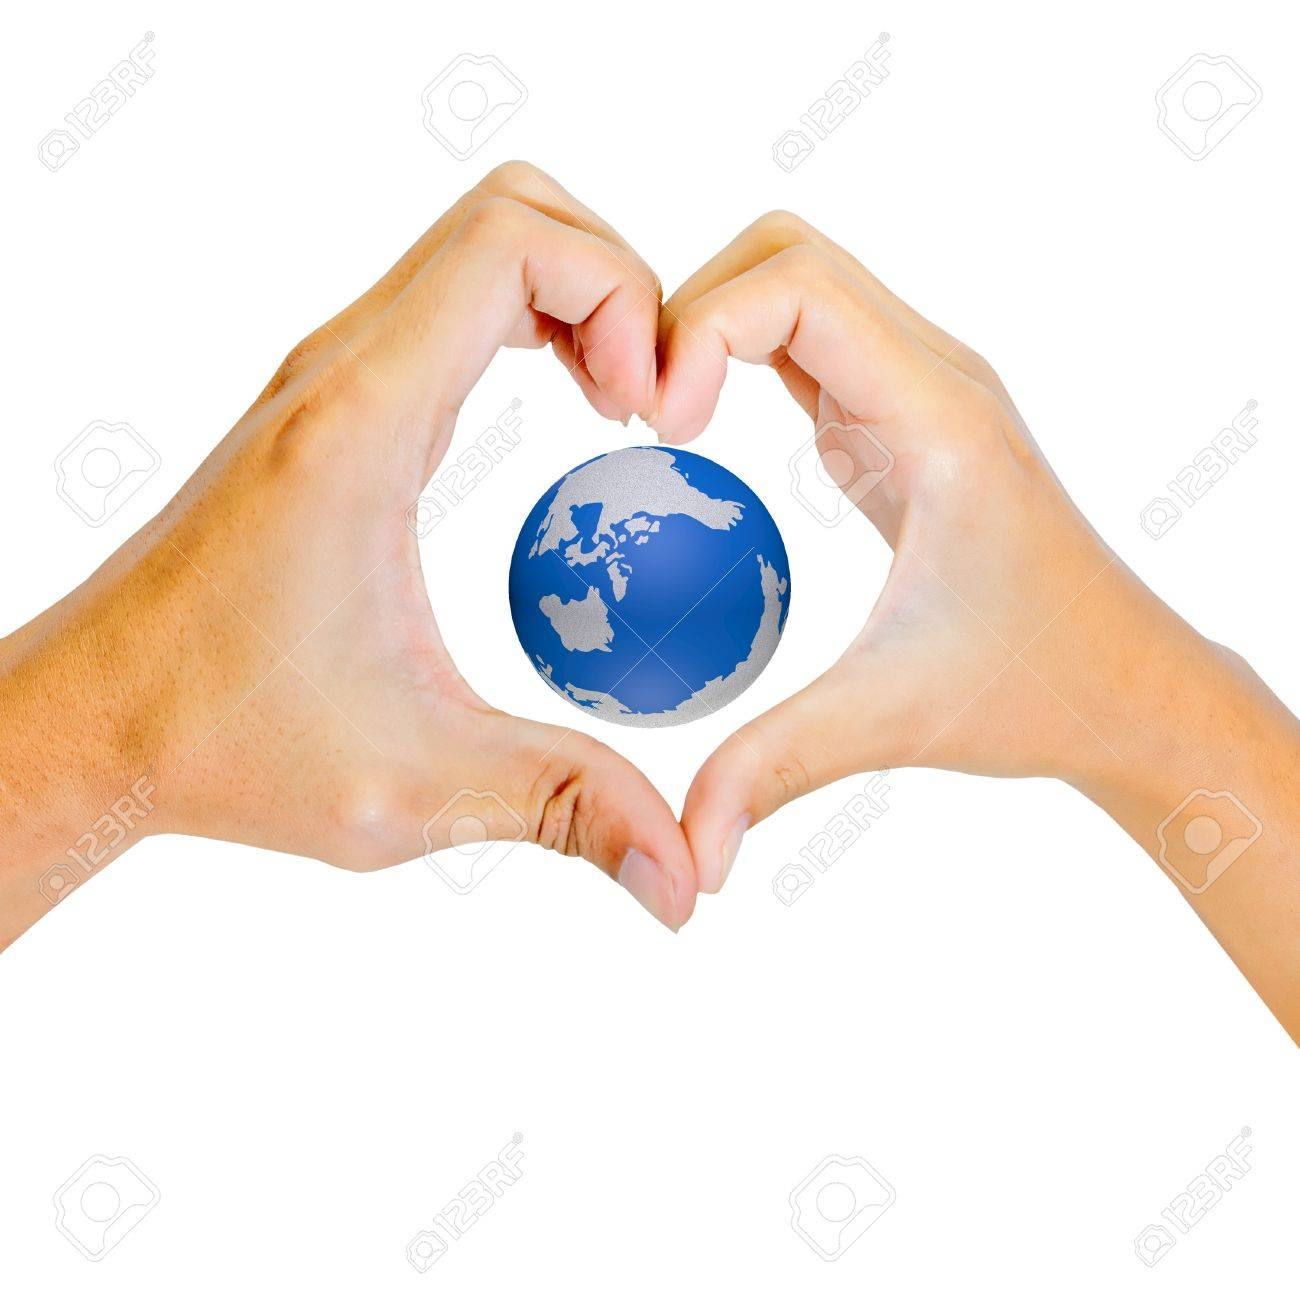 Uncategorized Hands In A Heart earth in hands of a loving couple shaping heart stock photo 11177065